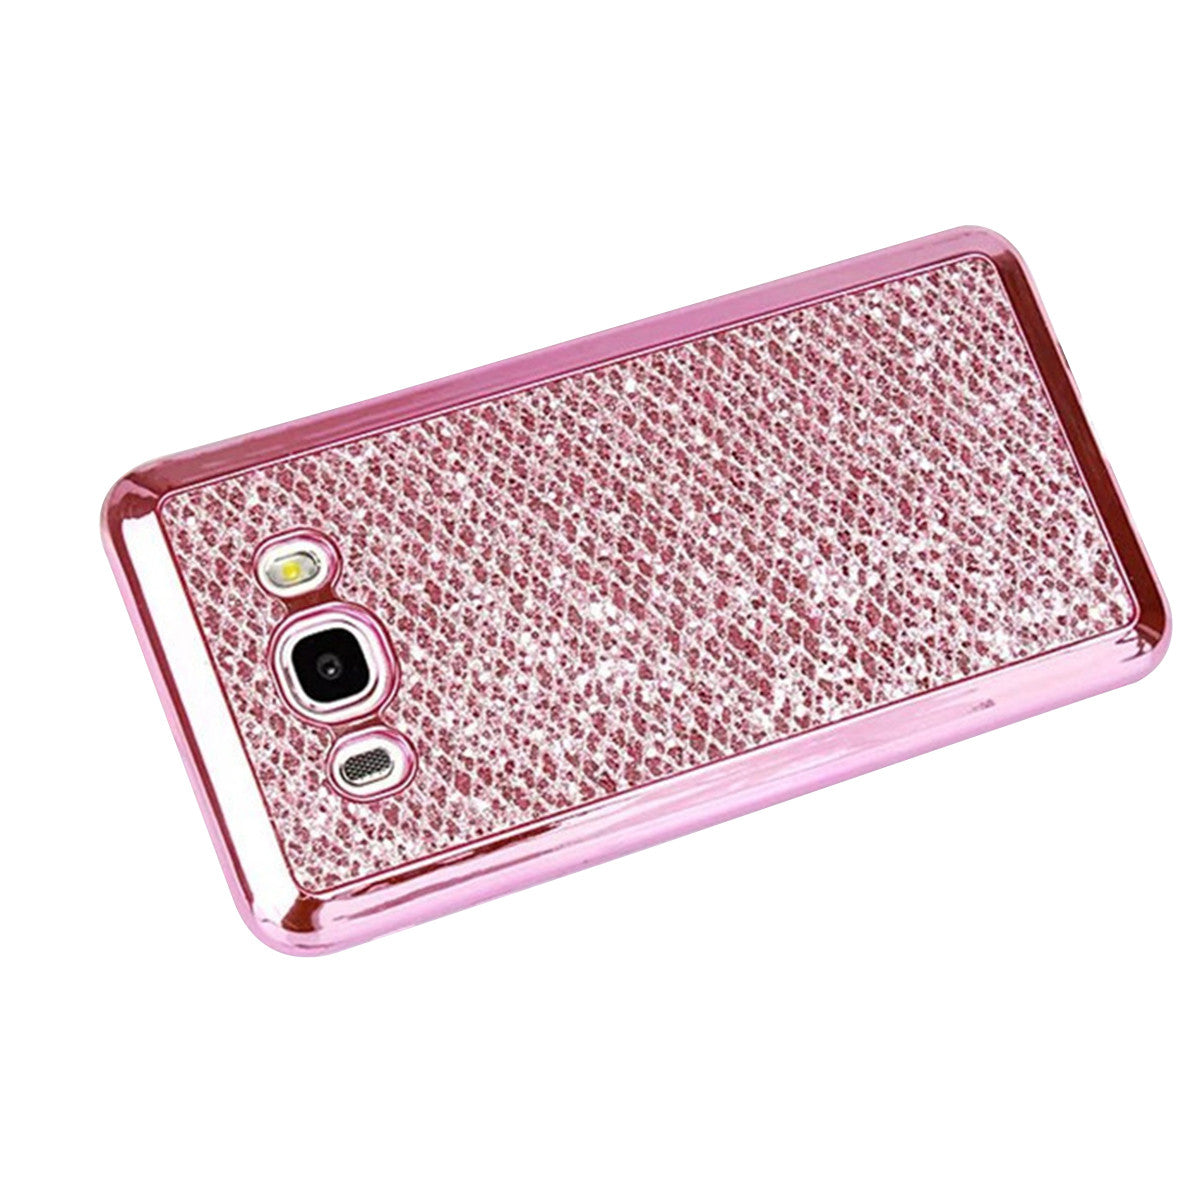 Samsung Galaxy S9 Phone Cover Slim TPU Case Electroplating Frame Glitter Powder Soft Protector Shell for Samsung Galaxy S9, phone case, MAK Kouture - MAK Kouture